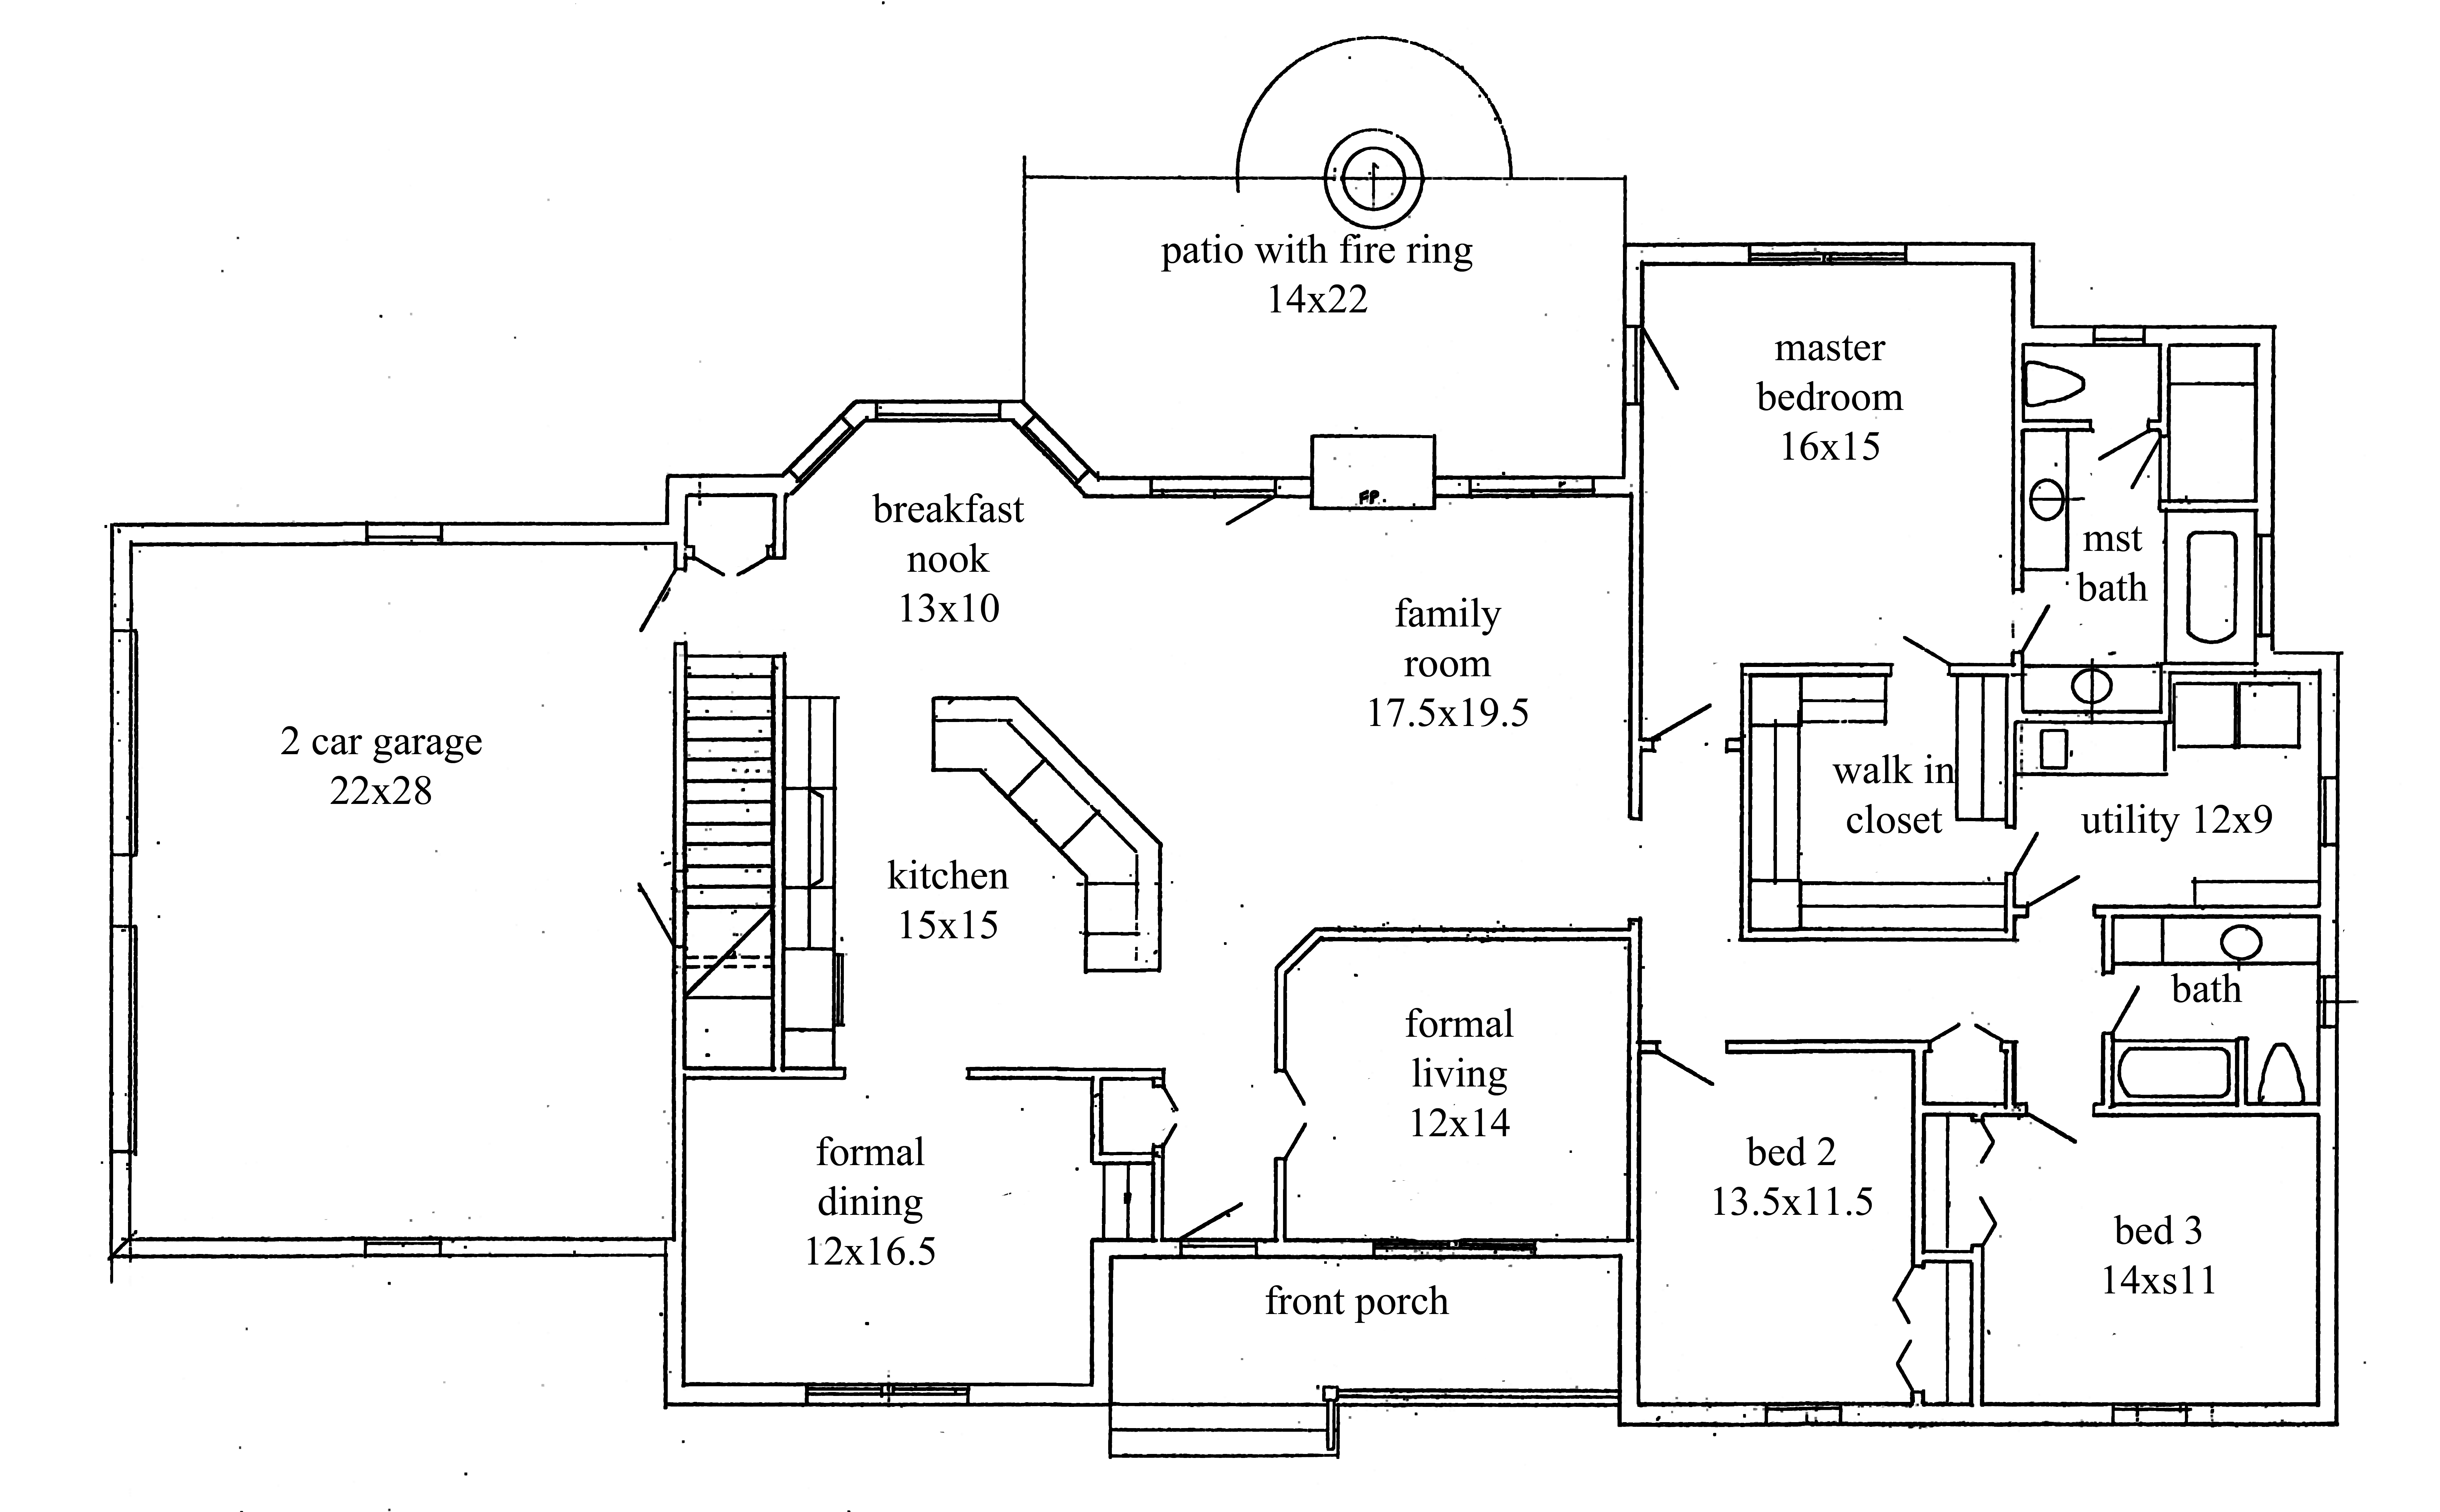 House plans new construction home floor plan House floor plans online